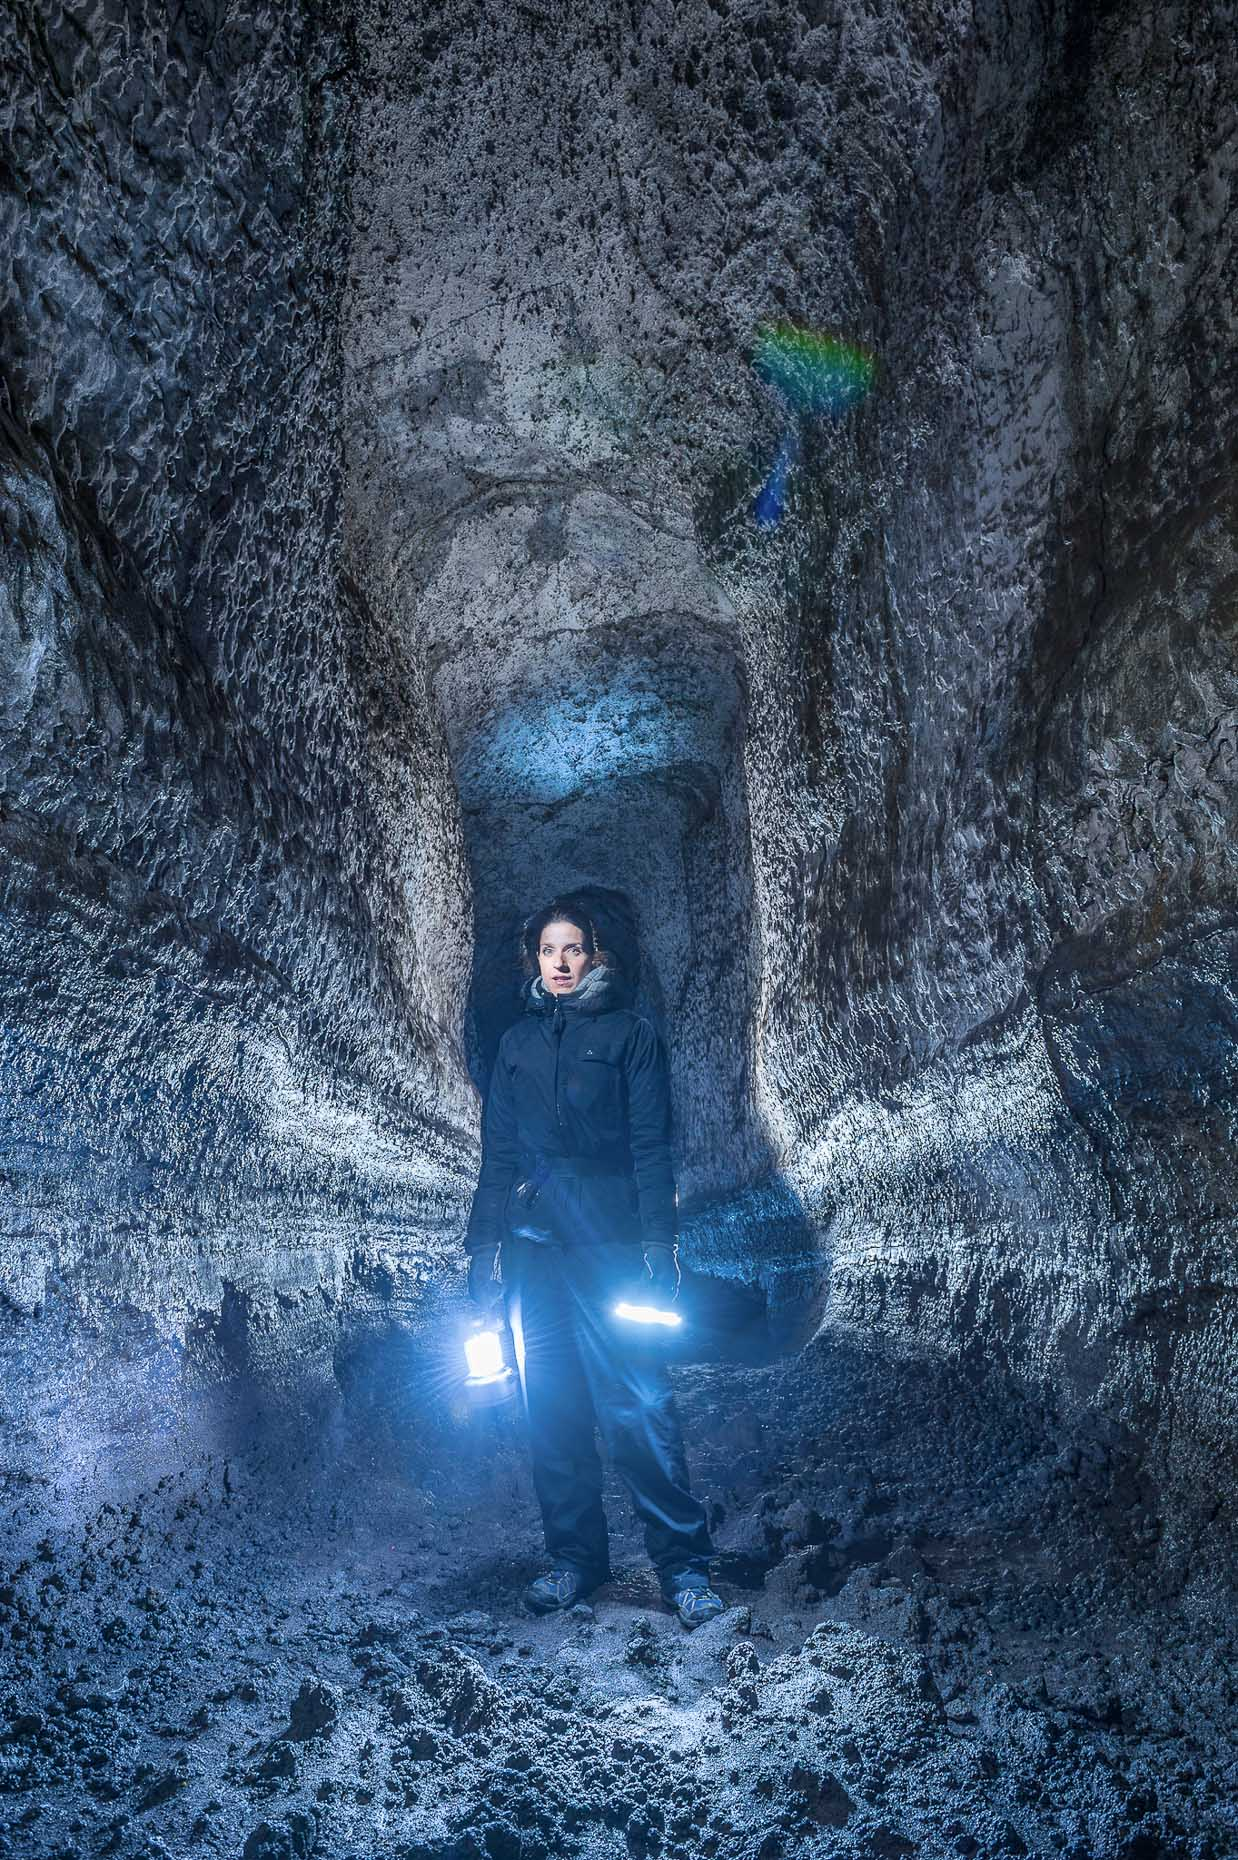 Portrait of woman in ice caves